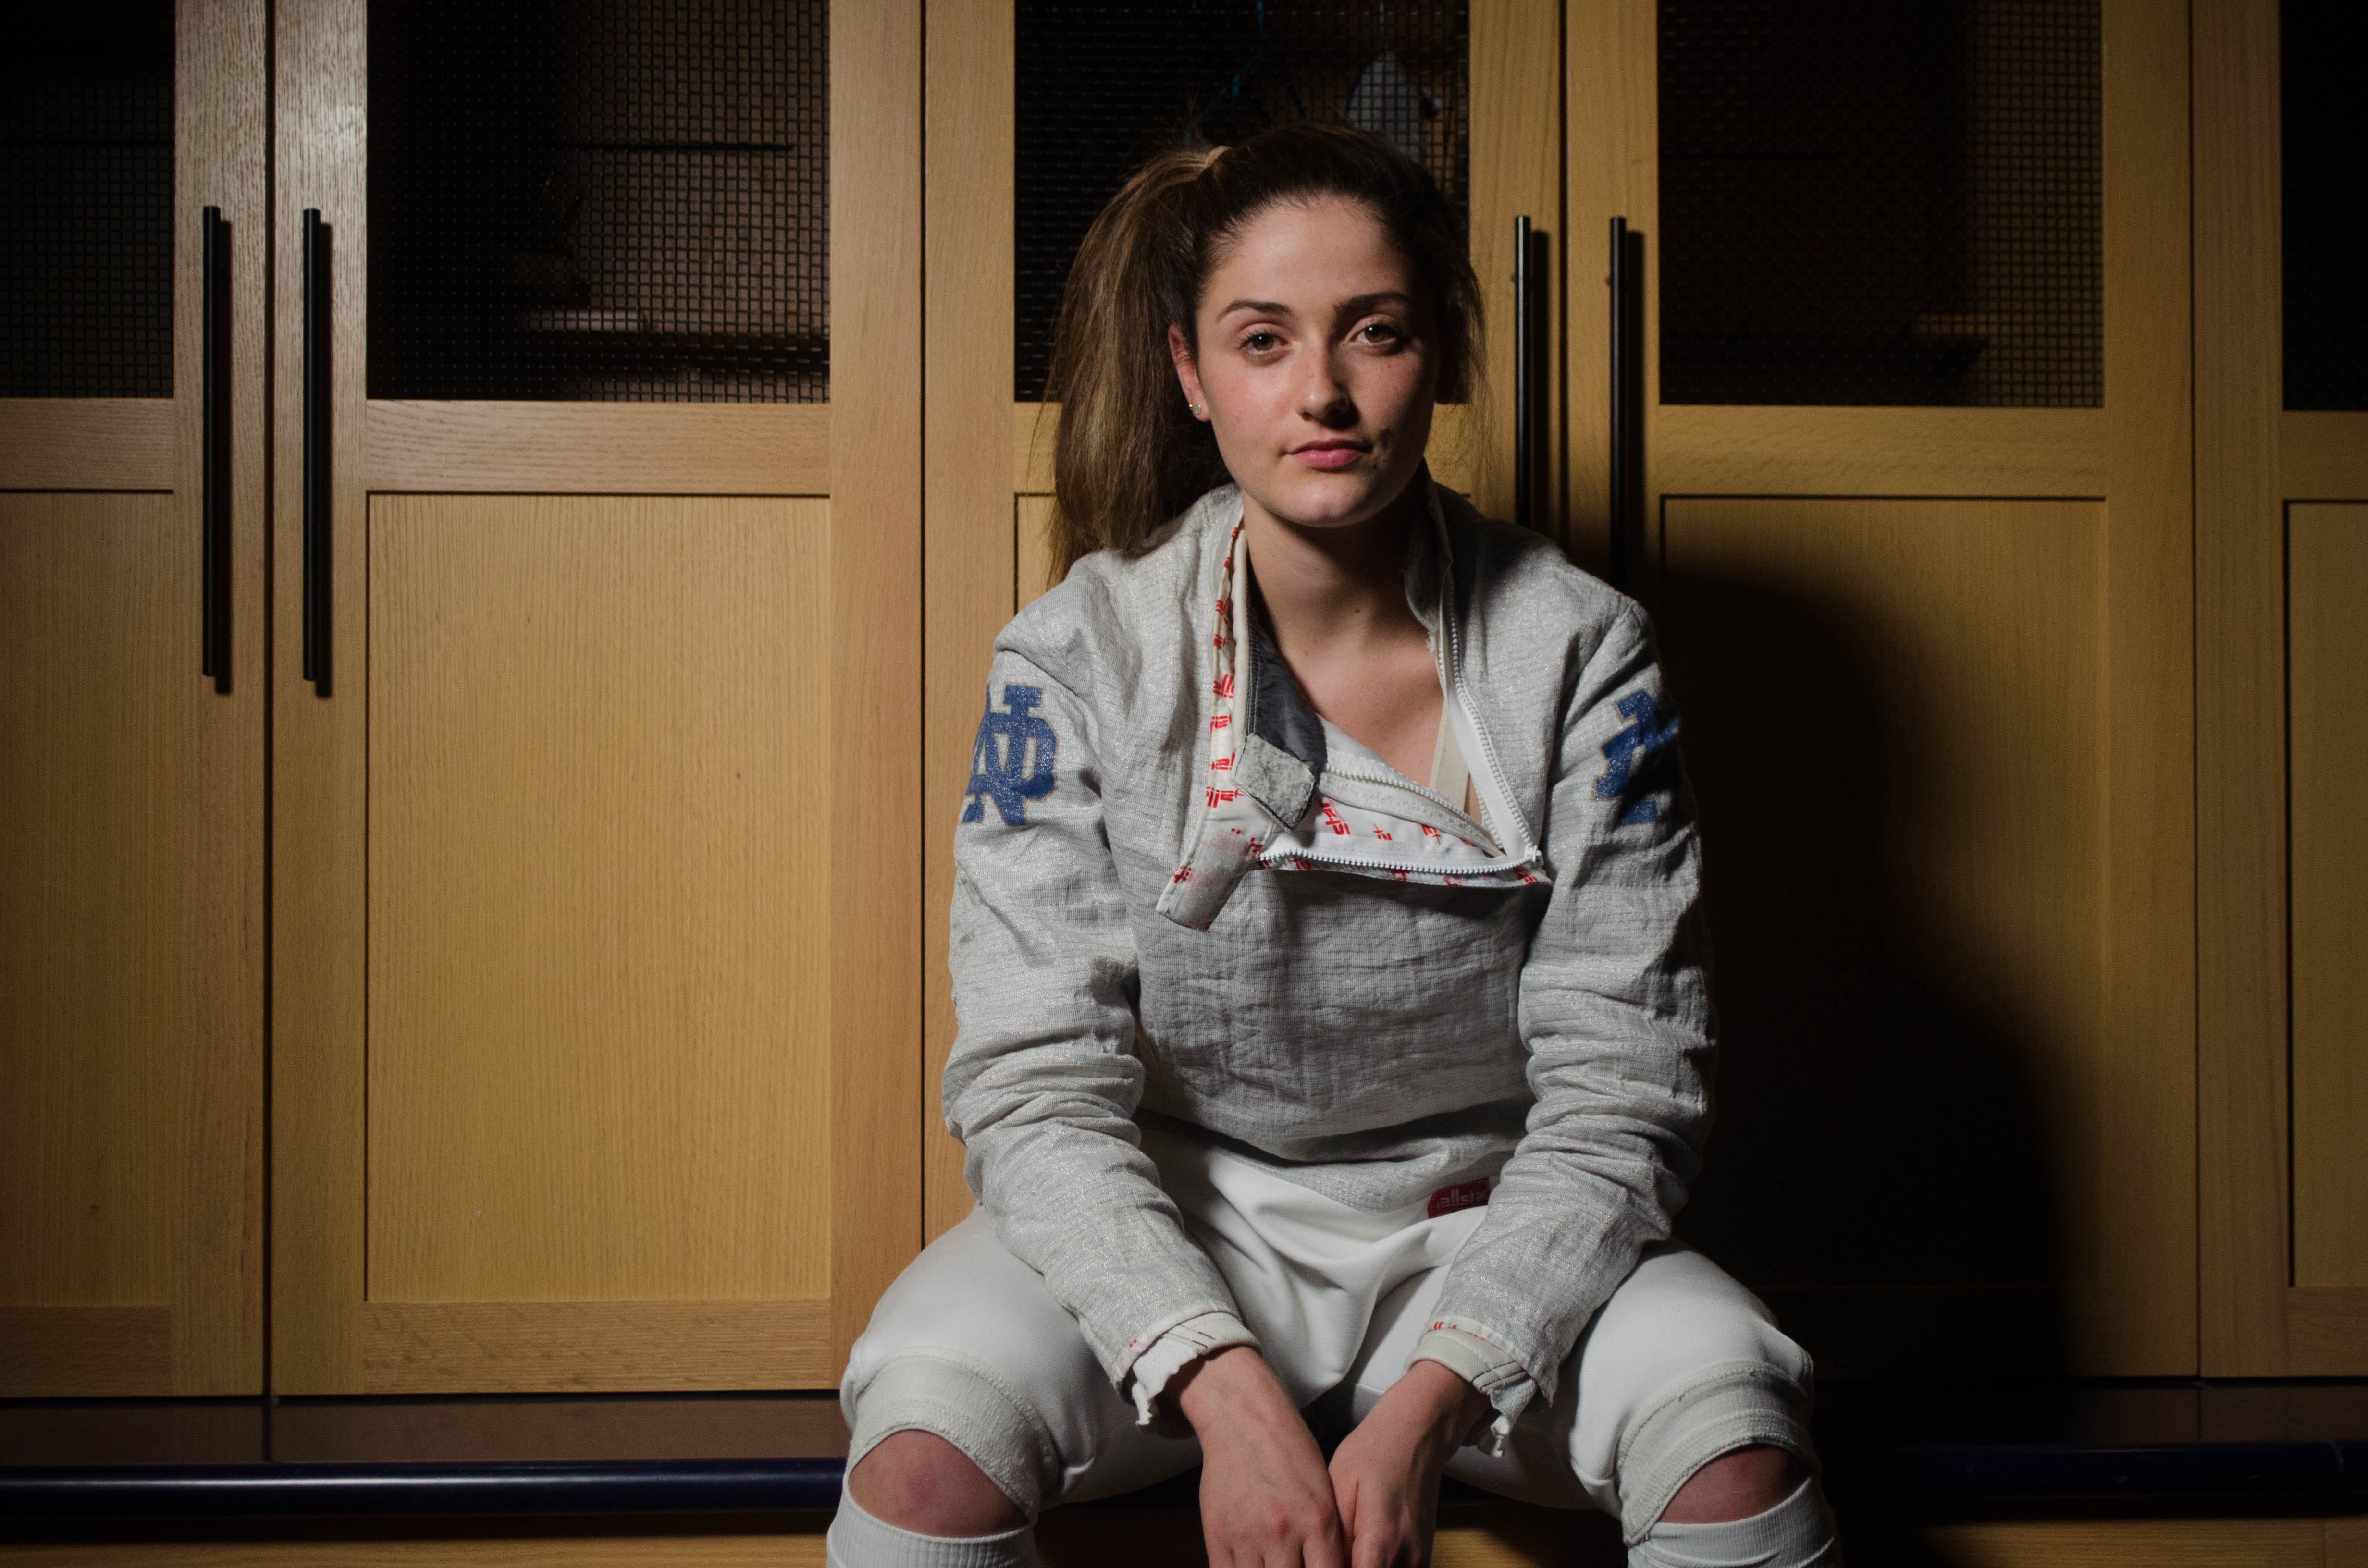 Fencer Francesca Russo